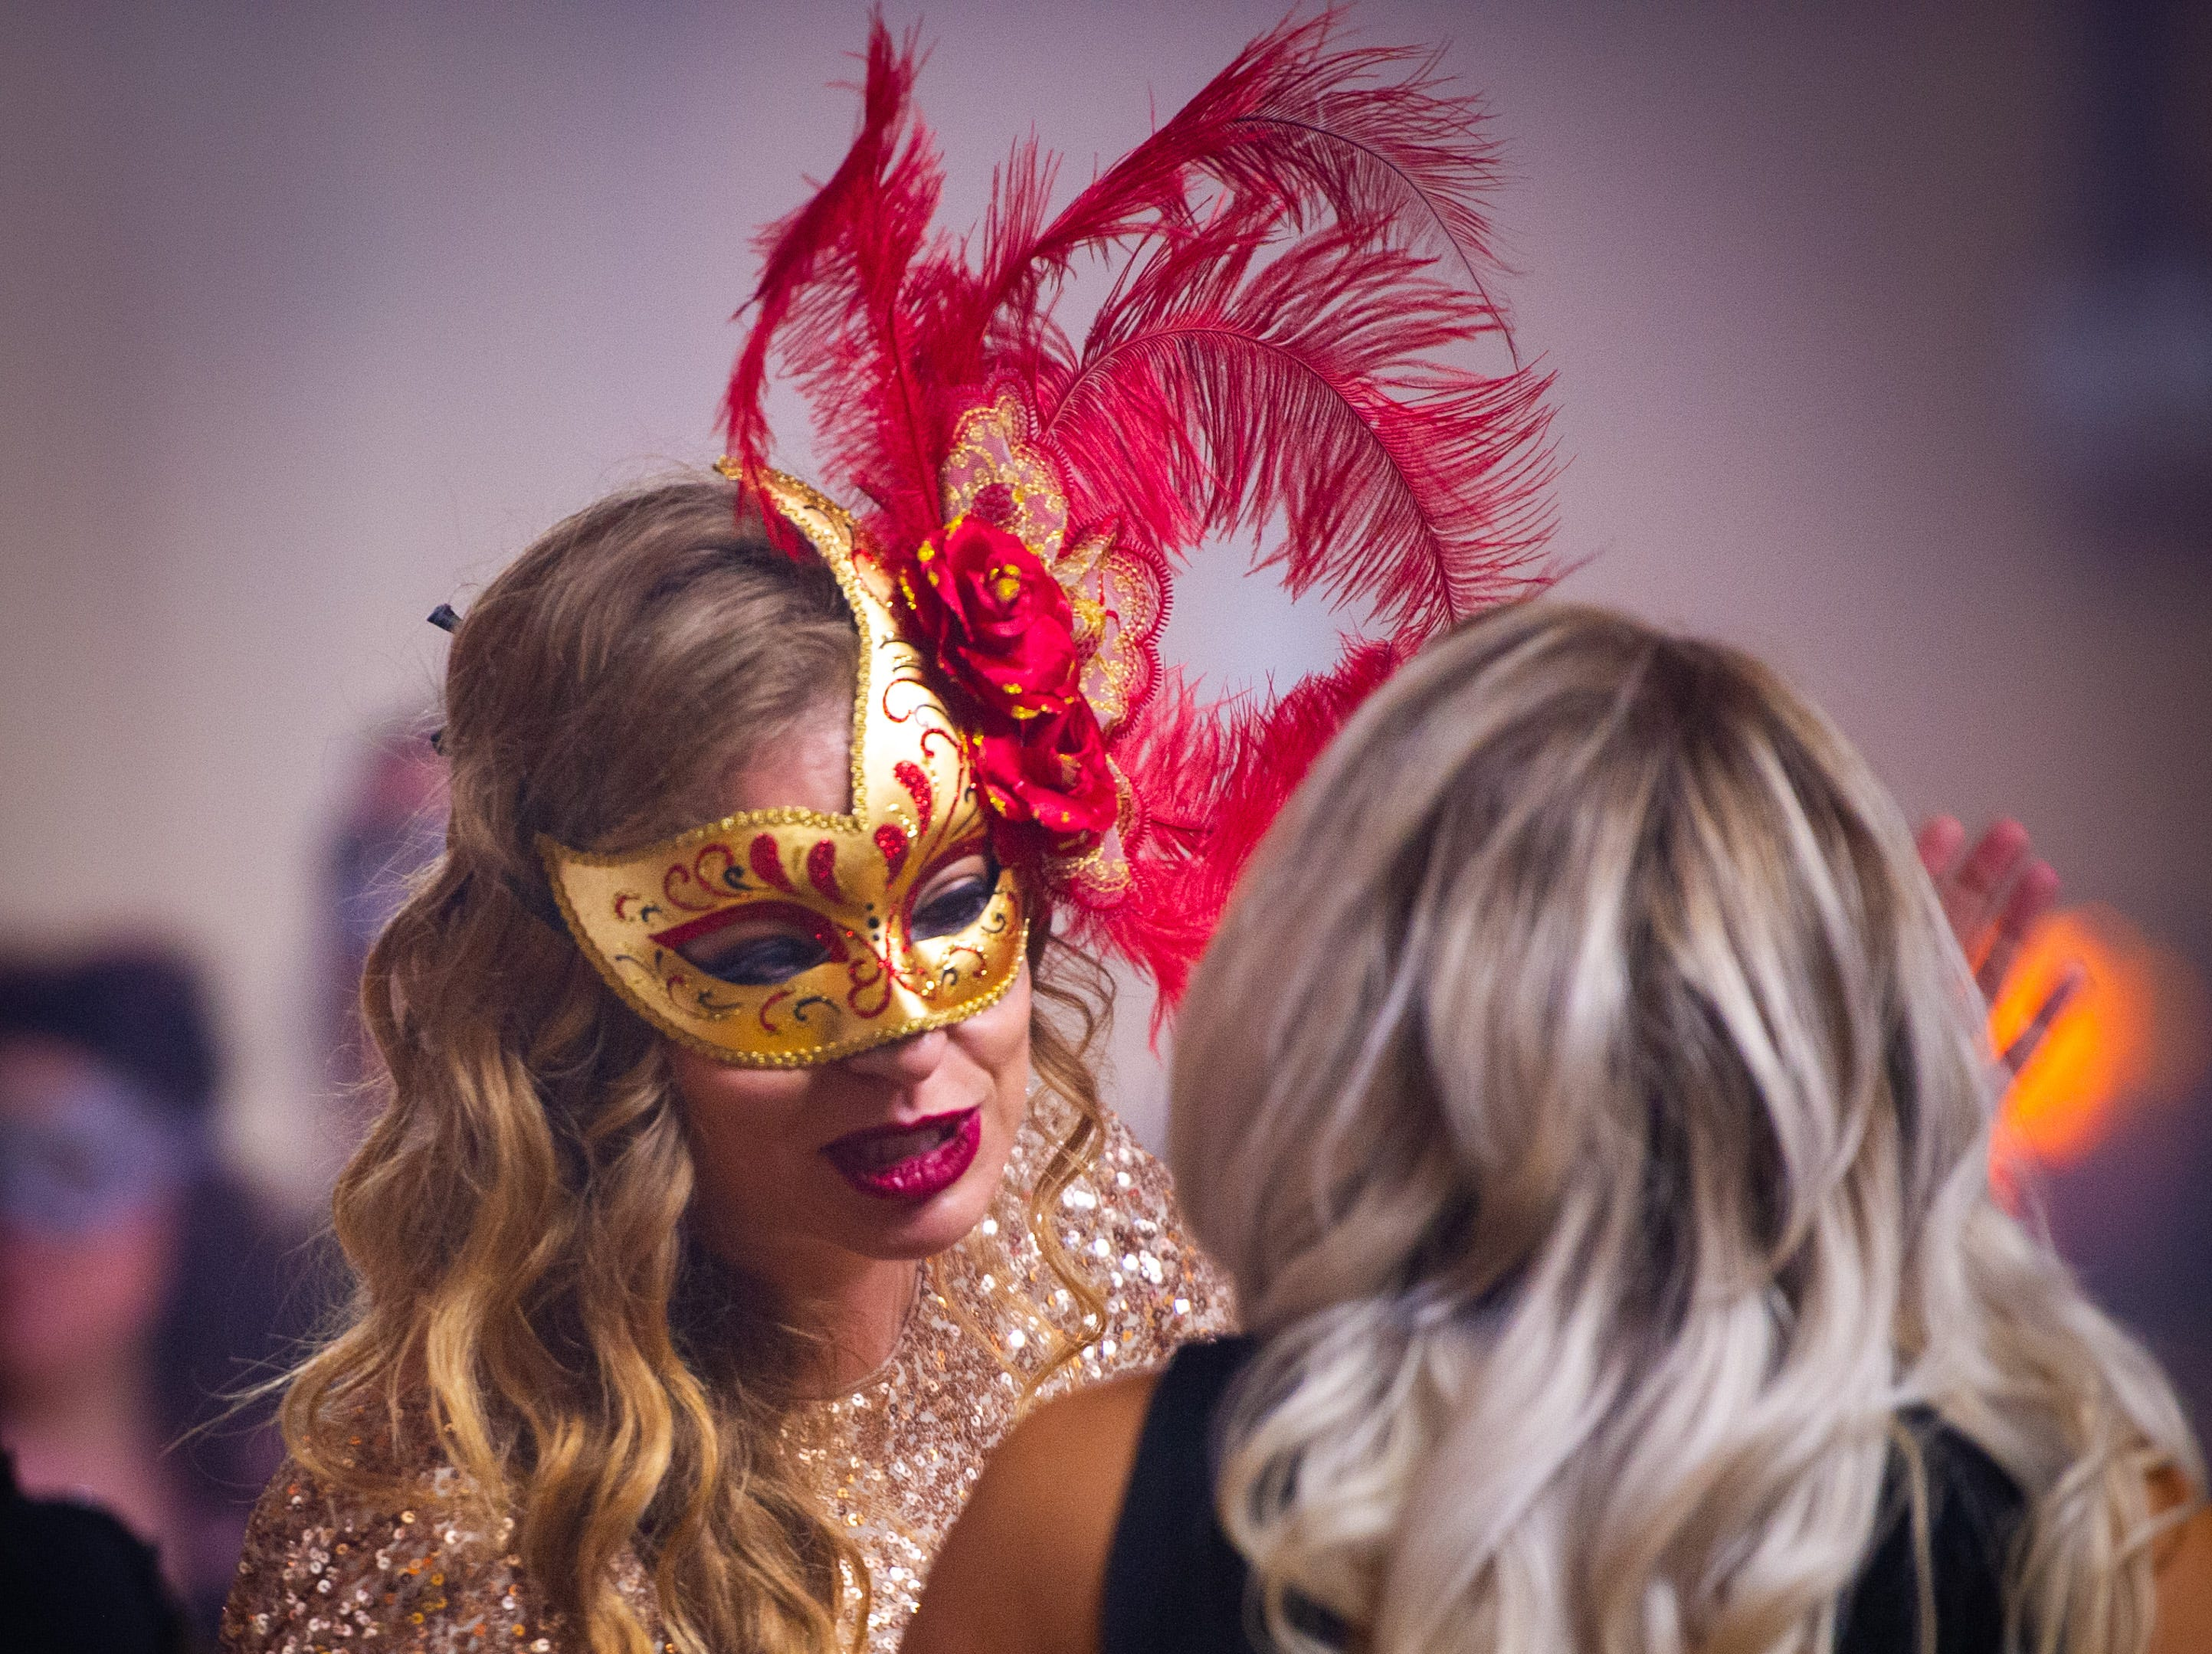 Costumed guests mingle Monday, Dec. 31, 2018, at The 12th Annual Indy Masquerade held at Union Station in Indianapolis.